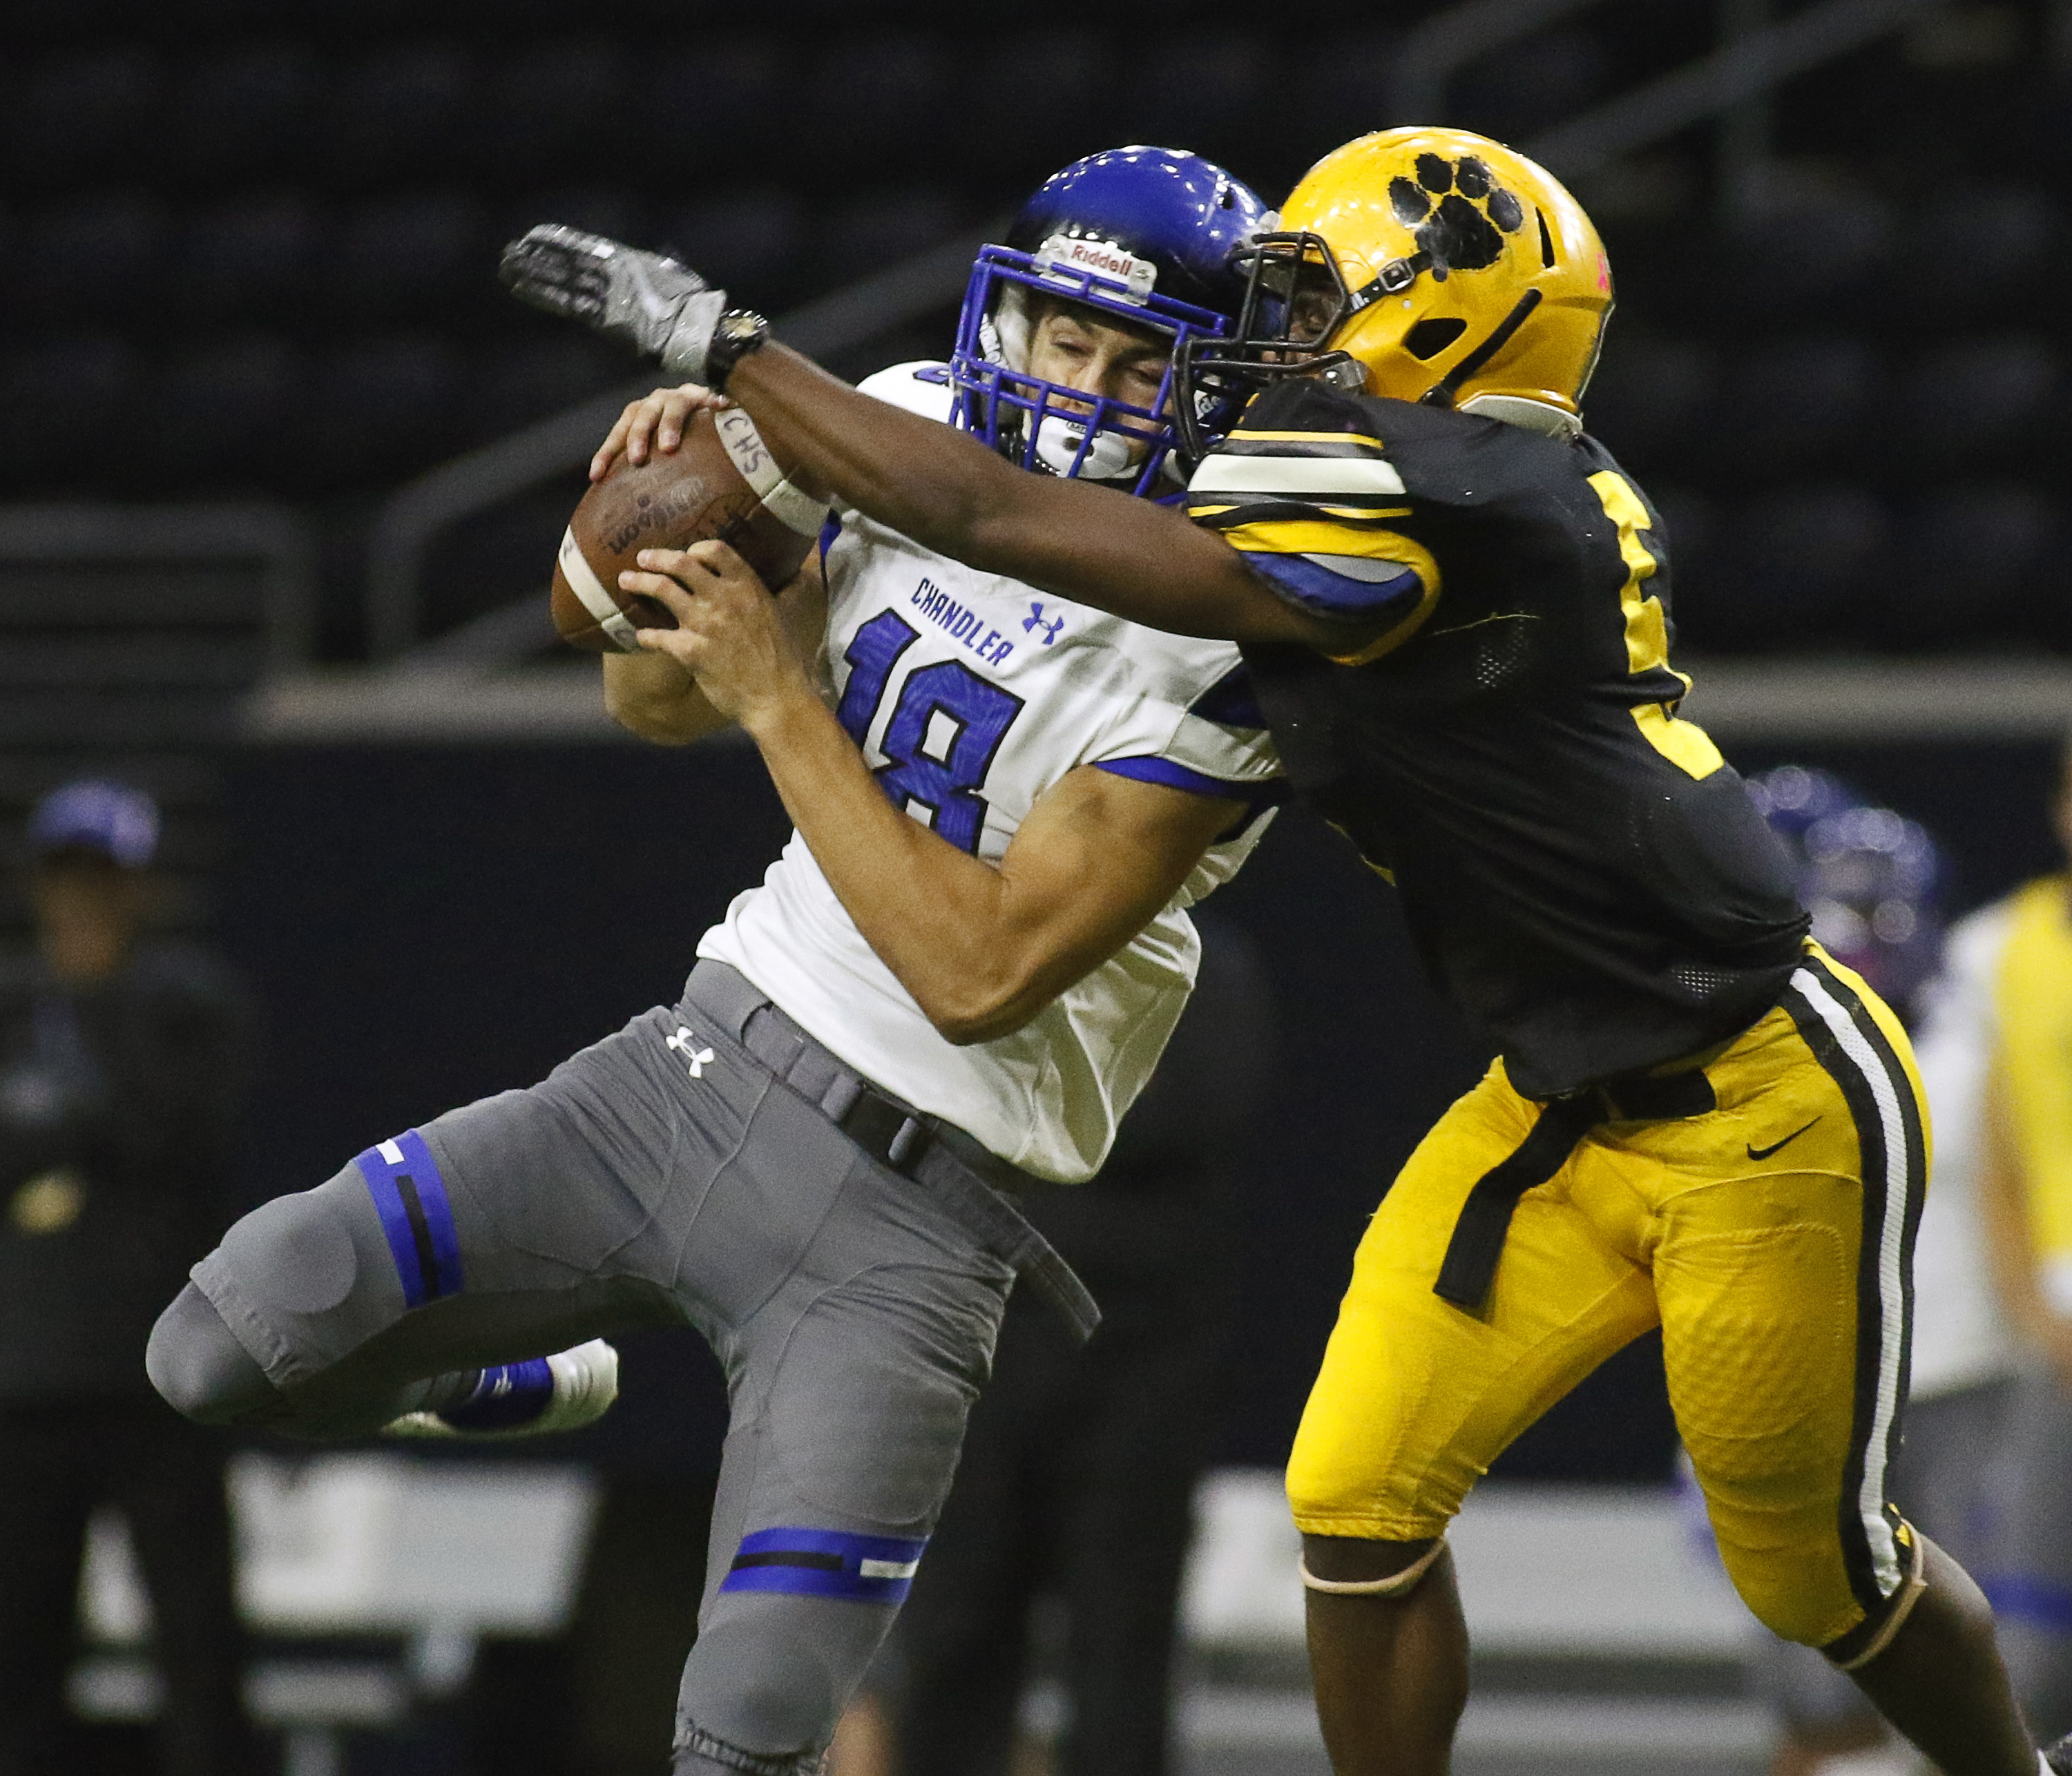 Dec 23, 2016 -- Frisco, TX, U.S.A -- GEICO State Champions Bowl Series. -- Chandler Wolves wide receiver Gunner Romney (18) makes the catch in front of Valdosta Wildcats Jayce Rogers (5) during the first half. Photo by Ray Carlin-USA TODAY Sports Images, Gannett ORG XMIT: US 135851 GEICO preps 12/23/201 [Via MerlinFTP Drop]